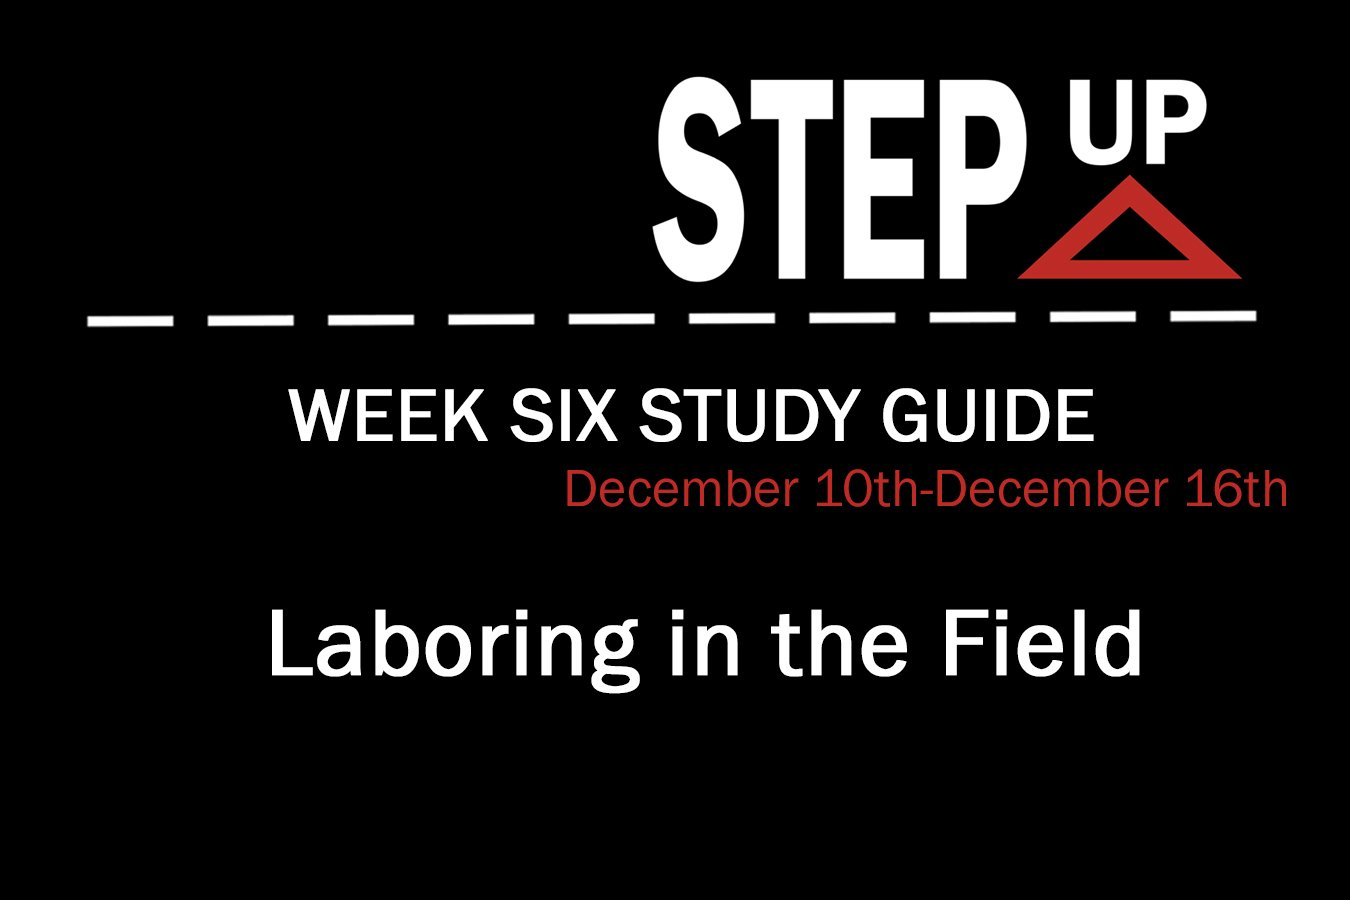 Step Up: Week Six Study Guide